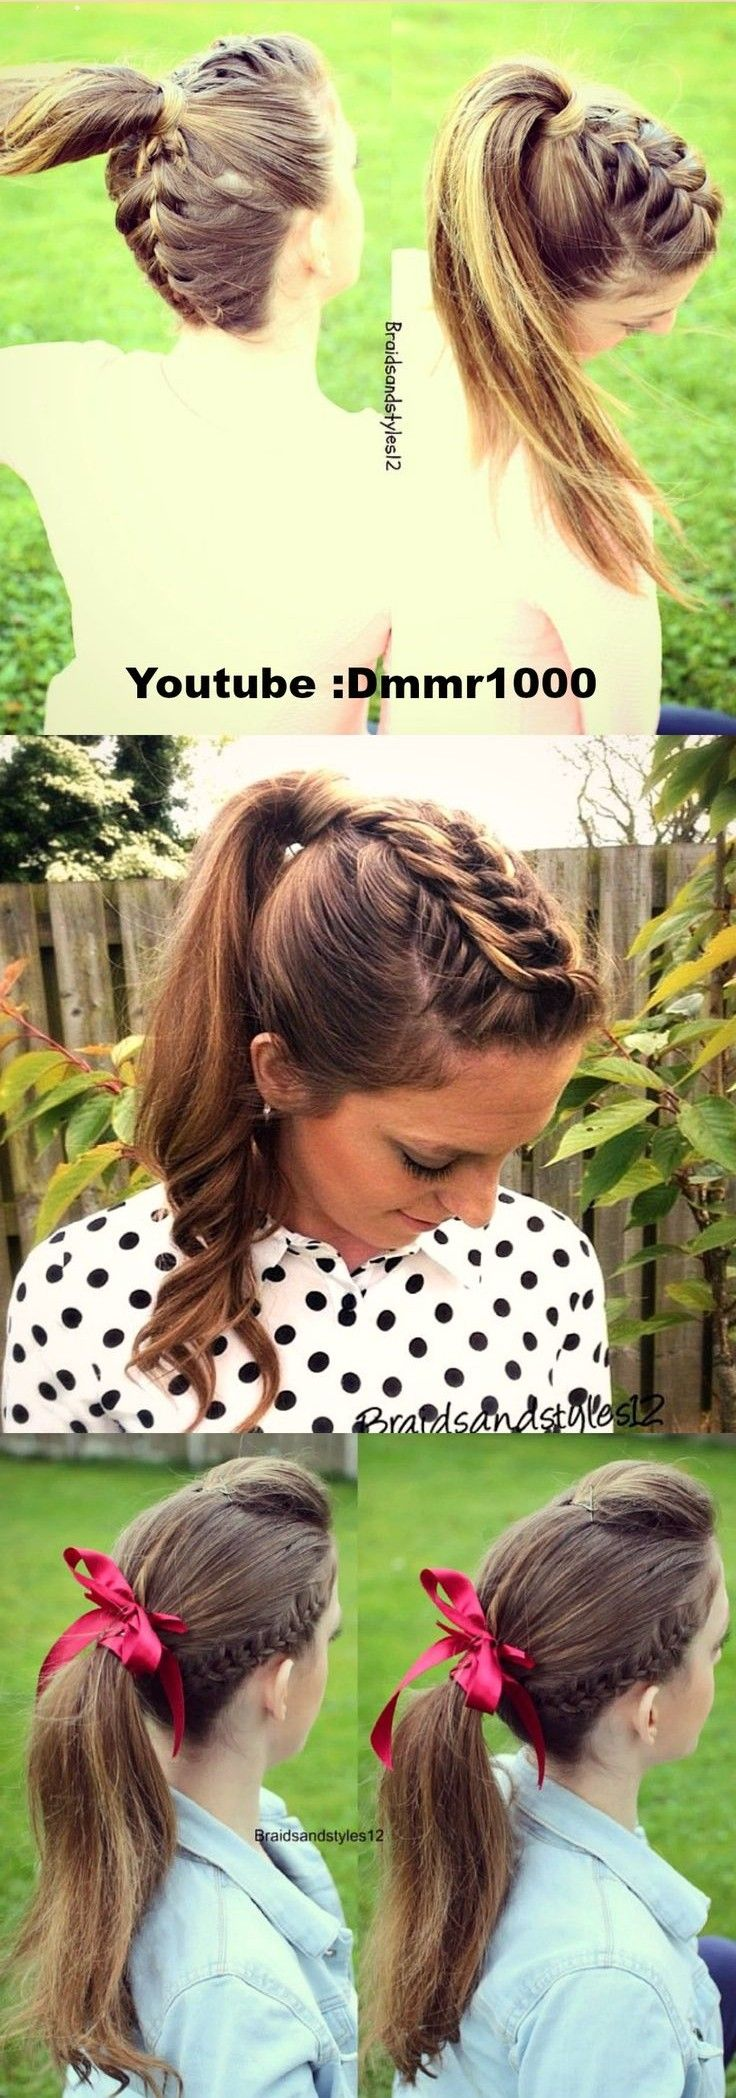 love great hairstyle